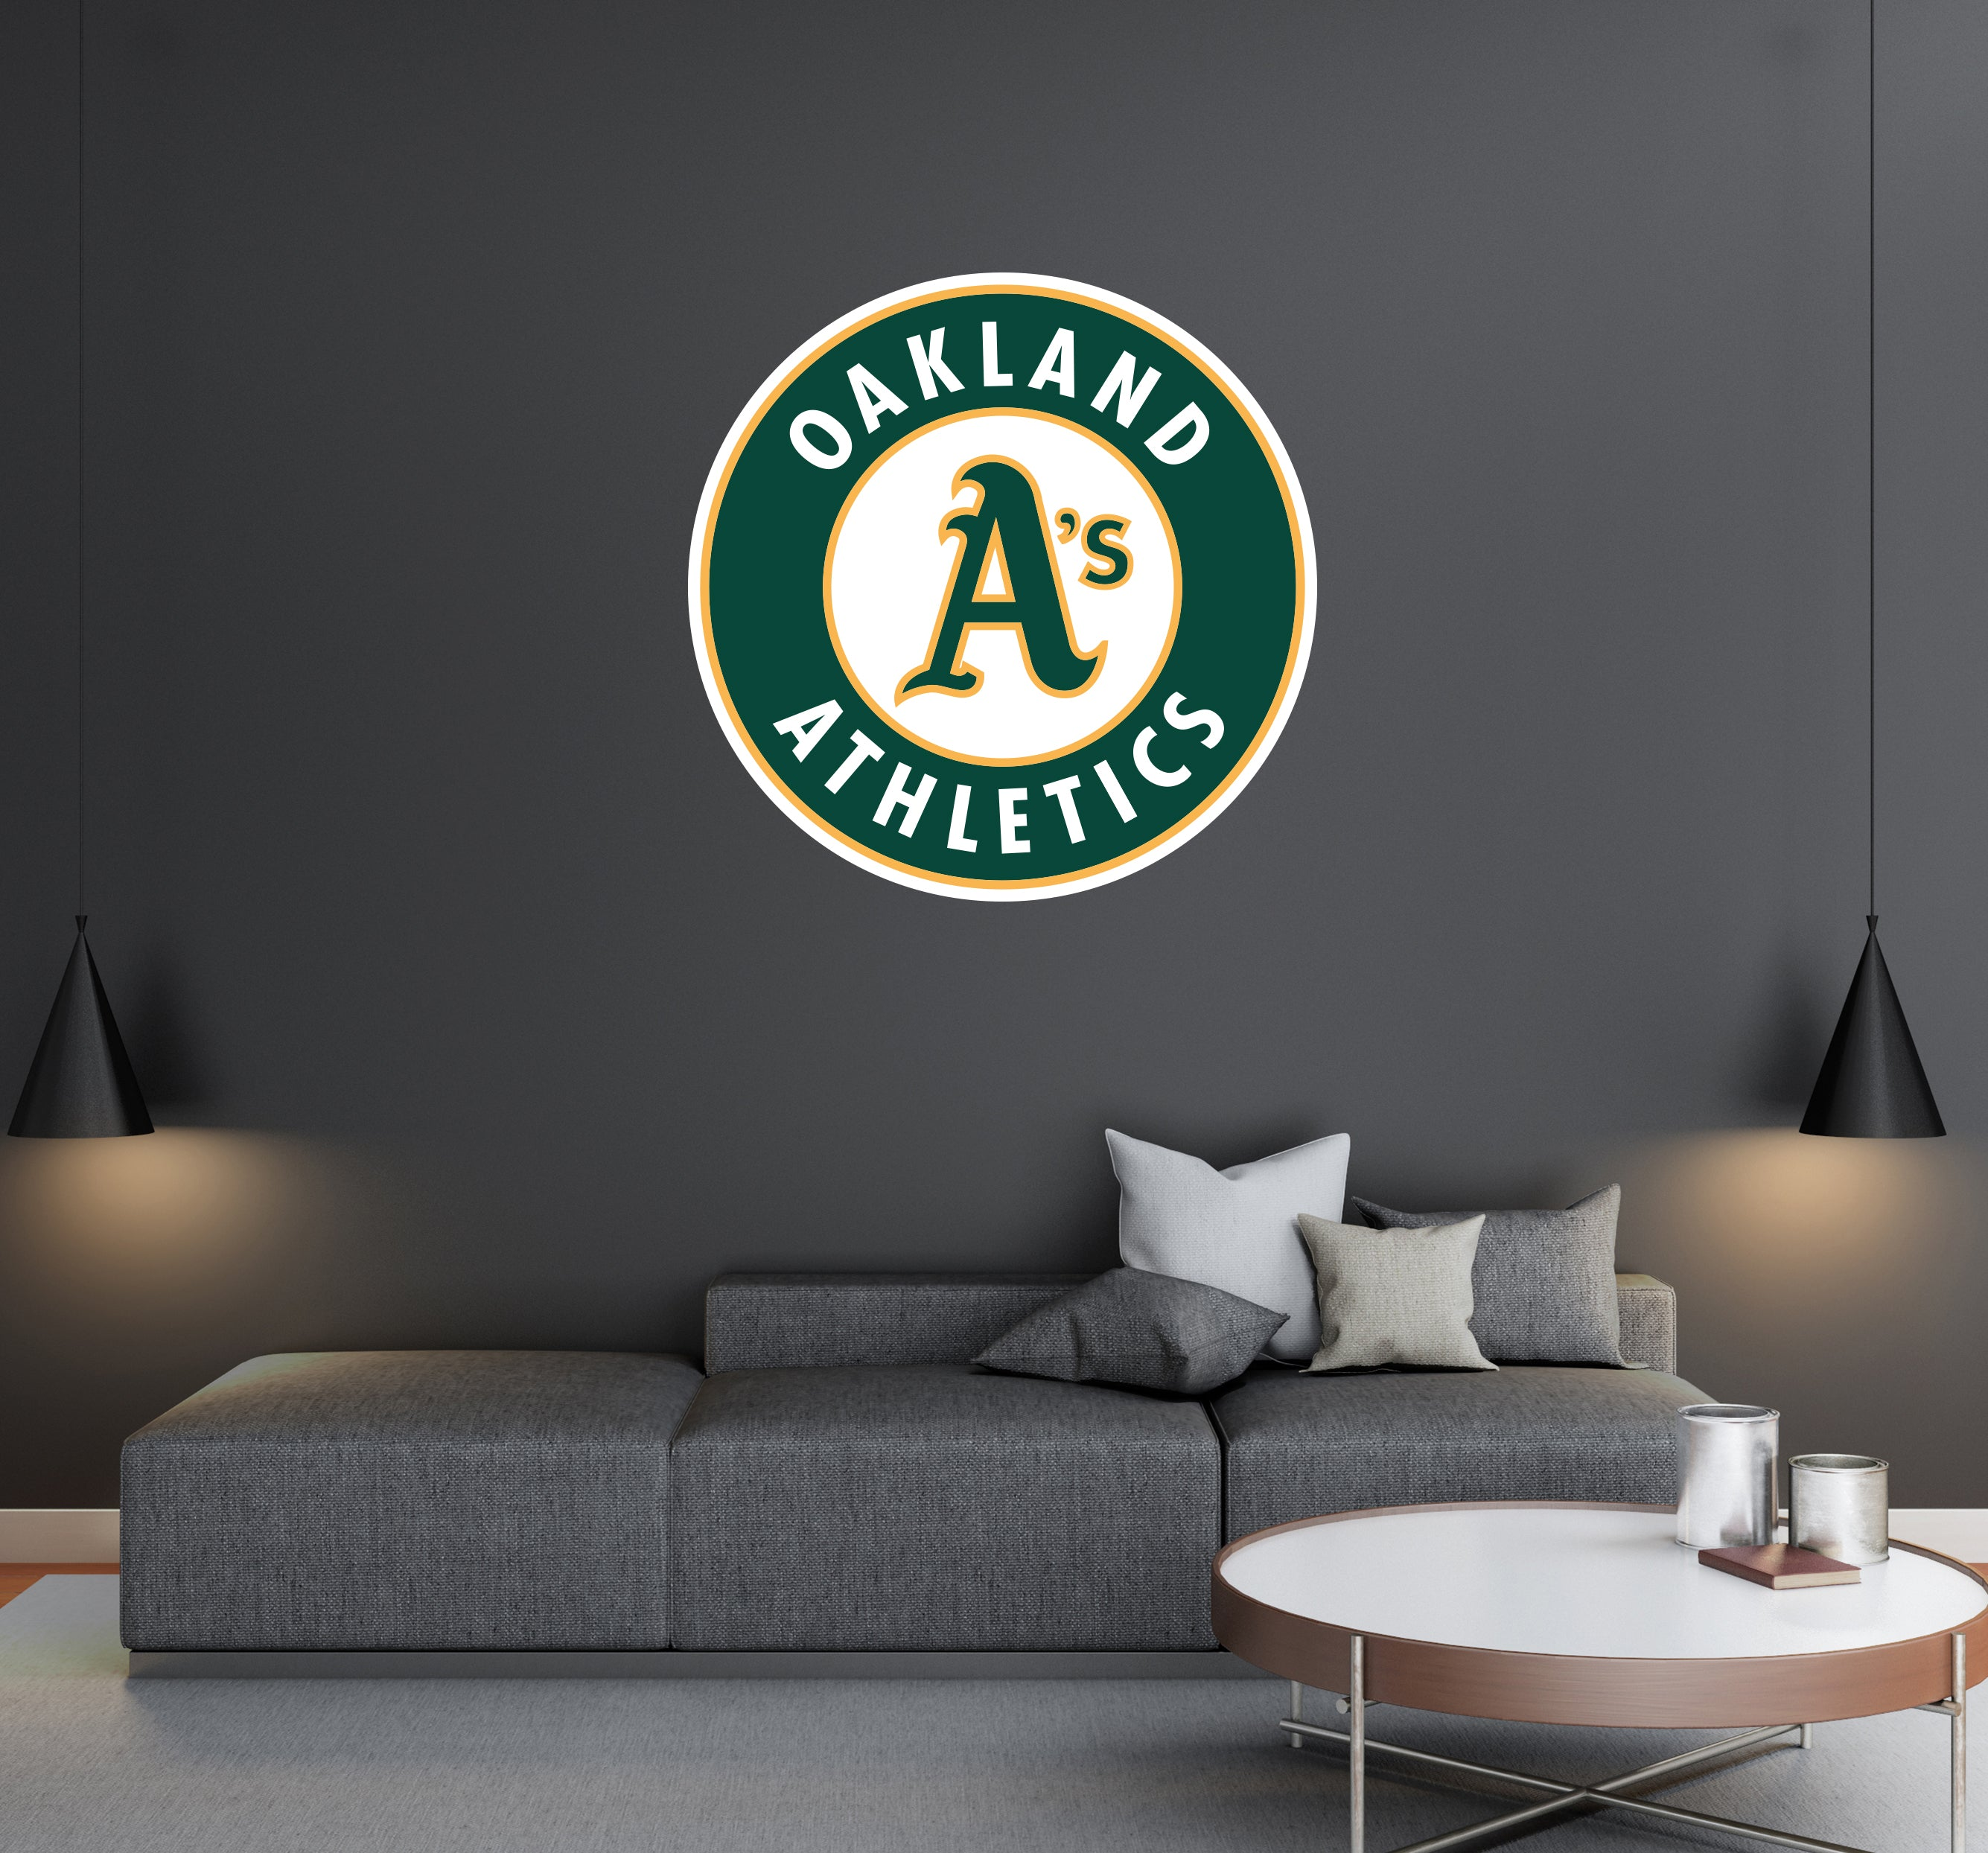 Oakland Athletics - MLB Baseball Team Logo - Wall Decal Removable & Reusable For Home Bedroom